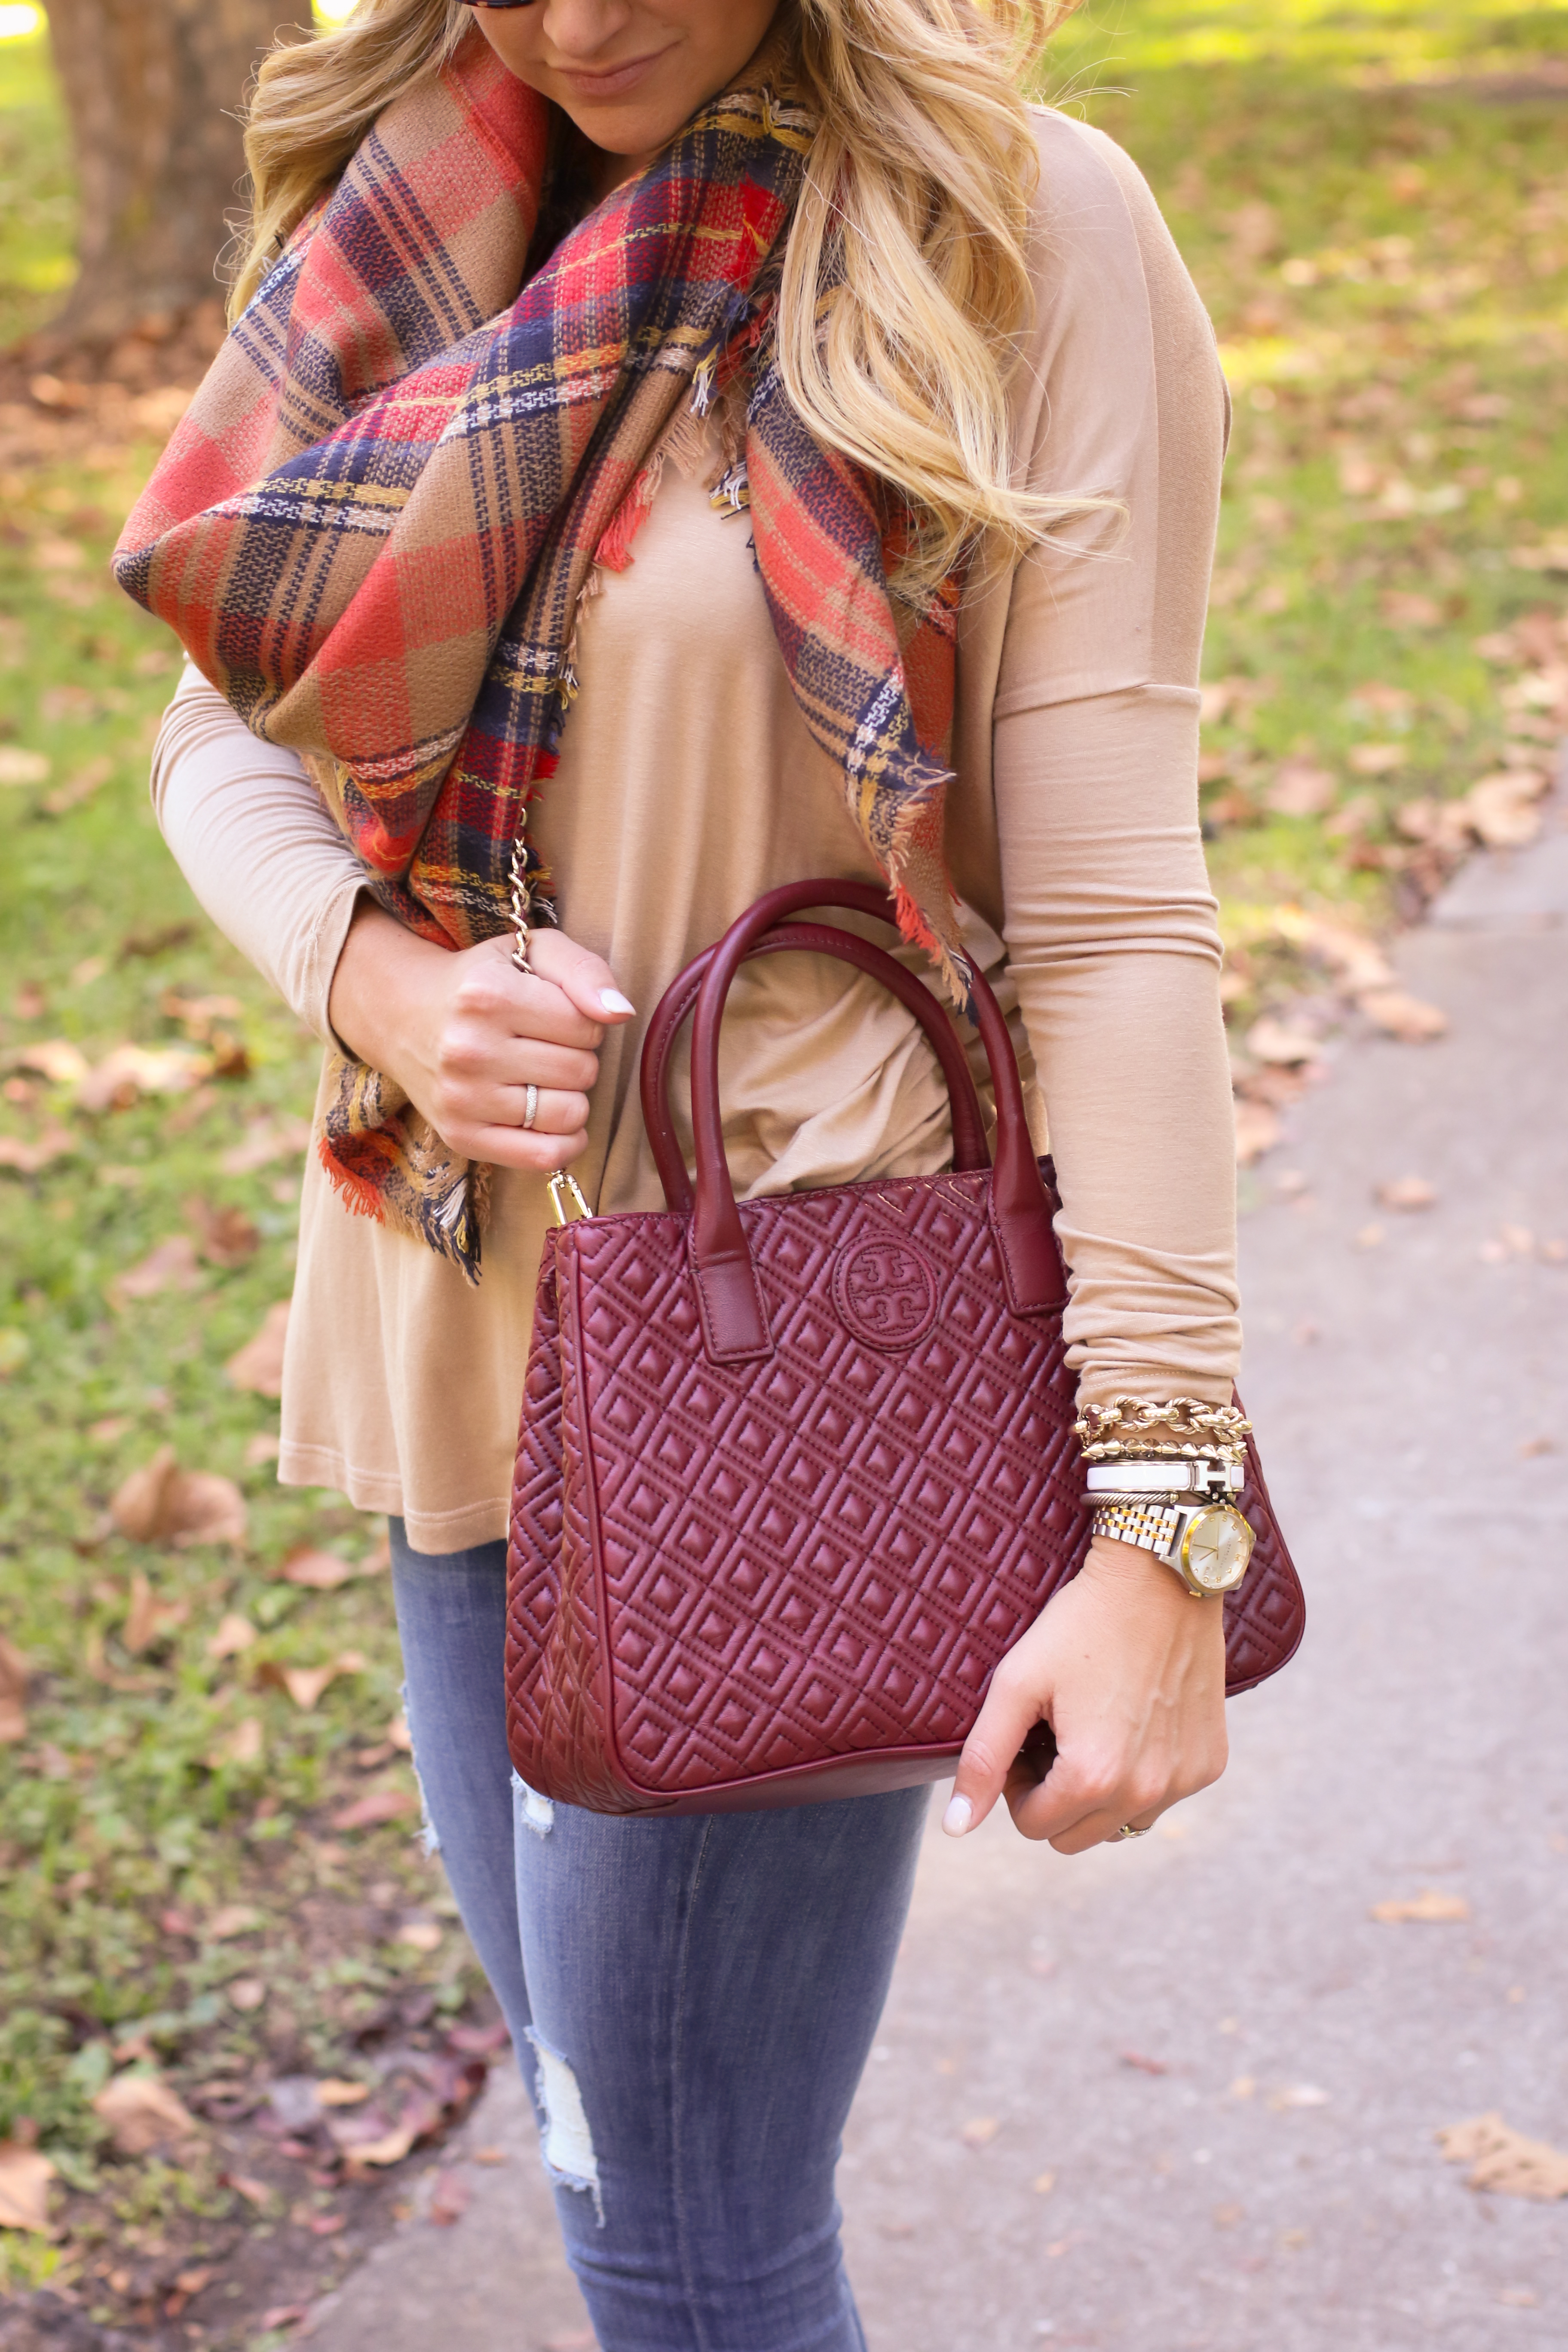 prada saffiano leather wallet red - Outfit | Thanksgiving Fall Plaid - SHOP DANDY | Shop Dandy Blog ...